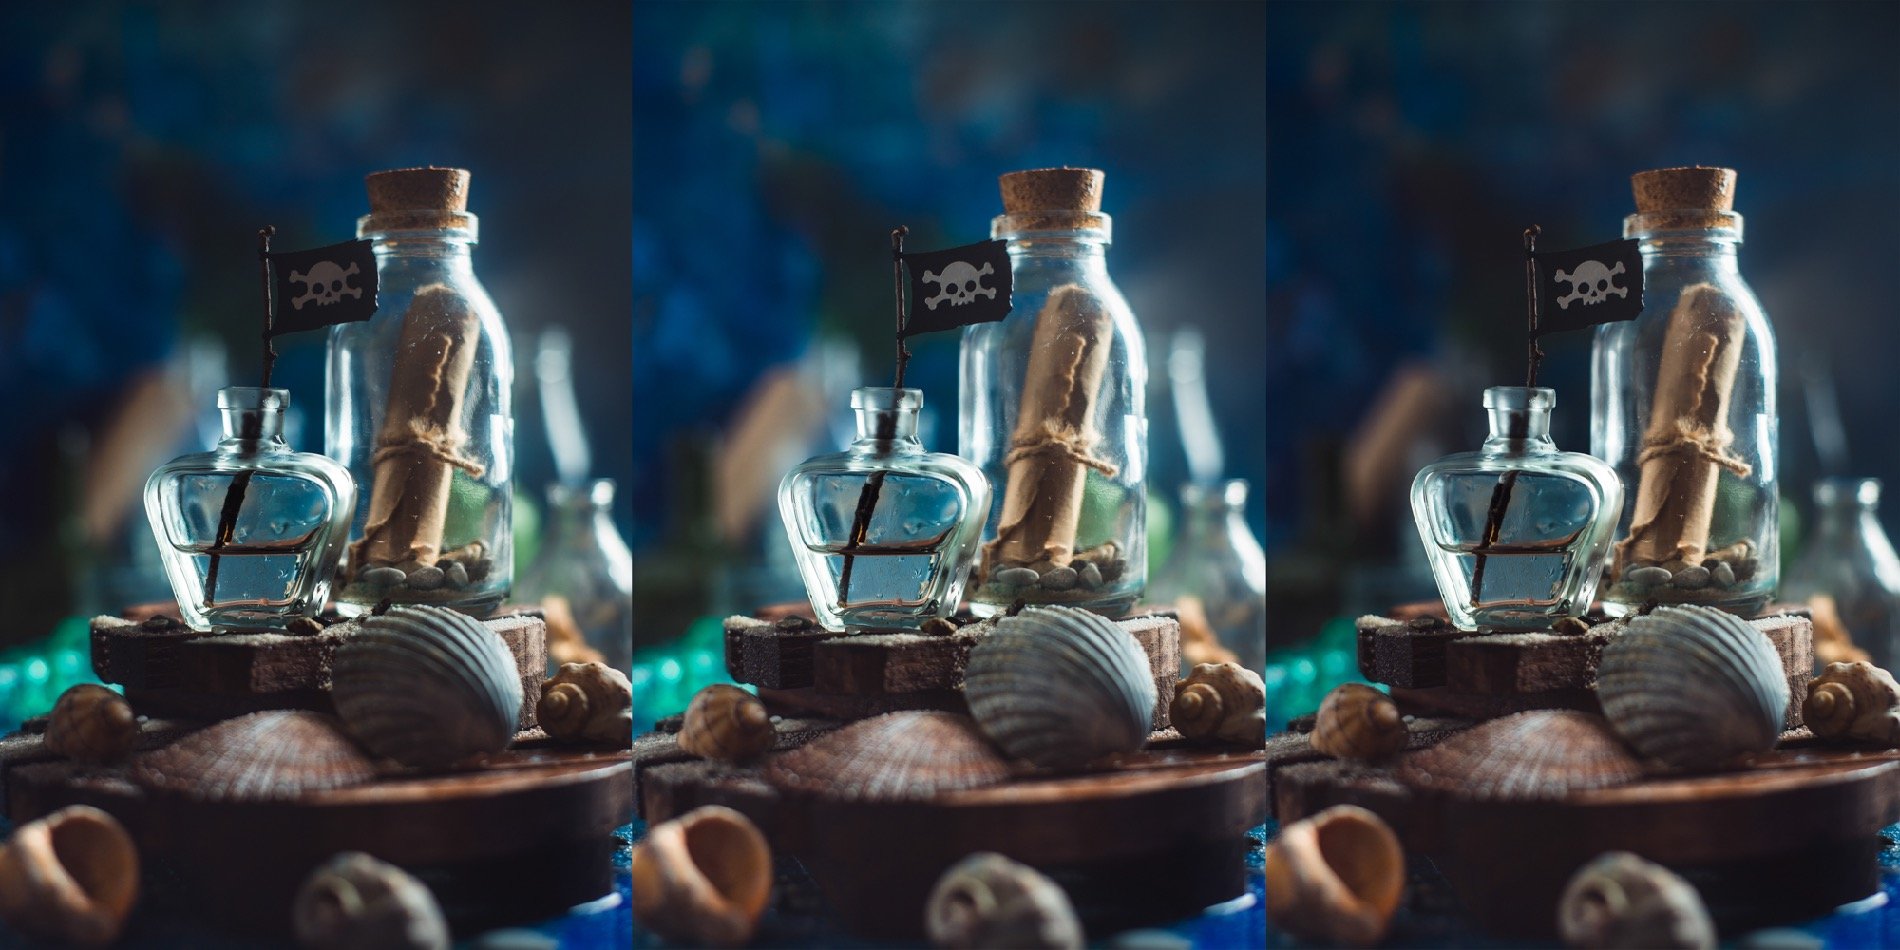 Dina-Belenko-Still-Life-Tutorial-4 Light_key-fill-both